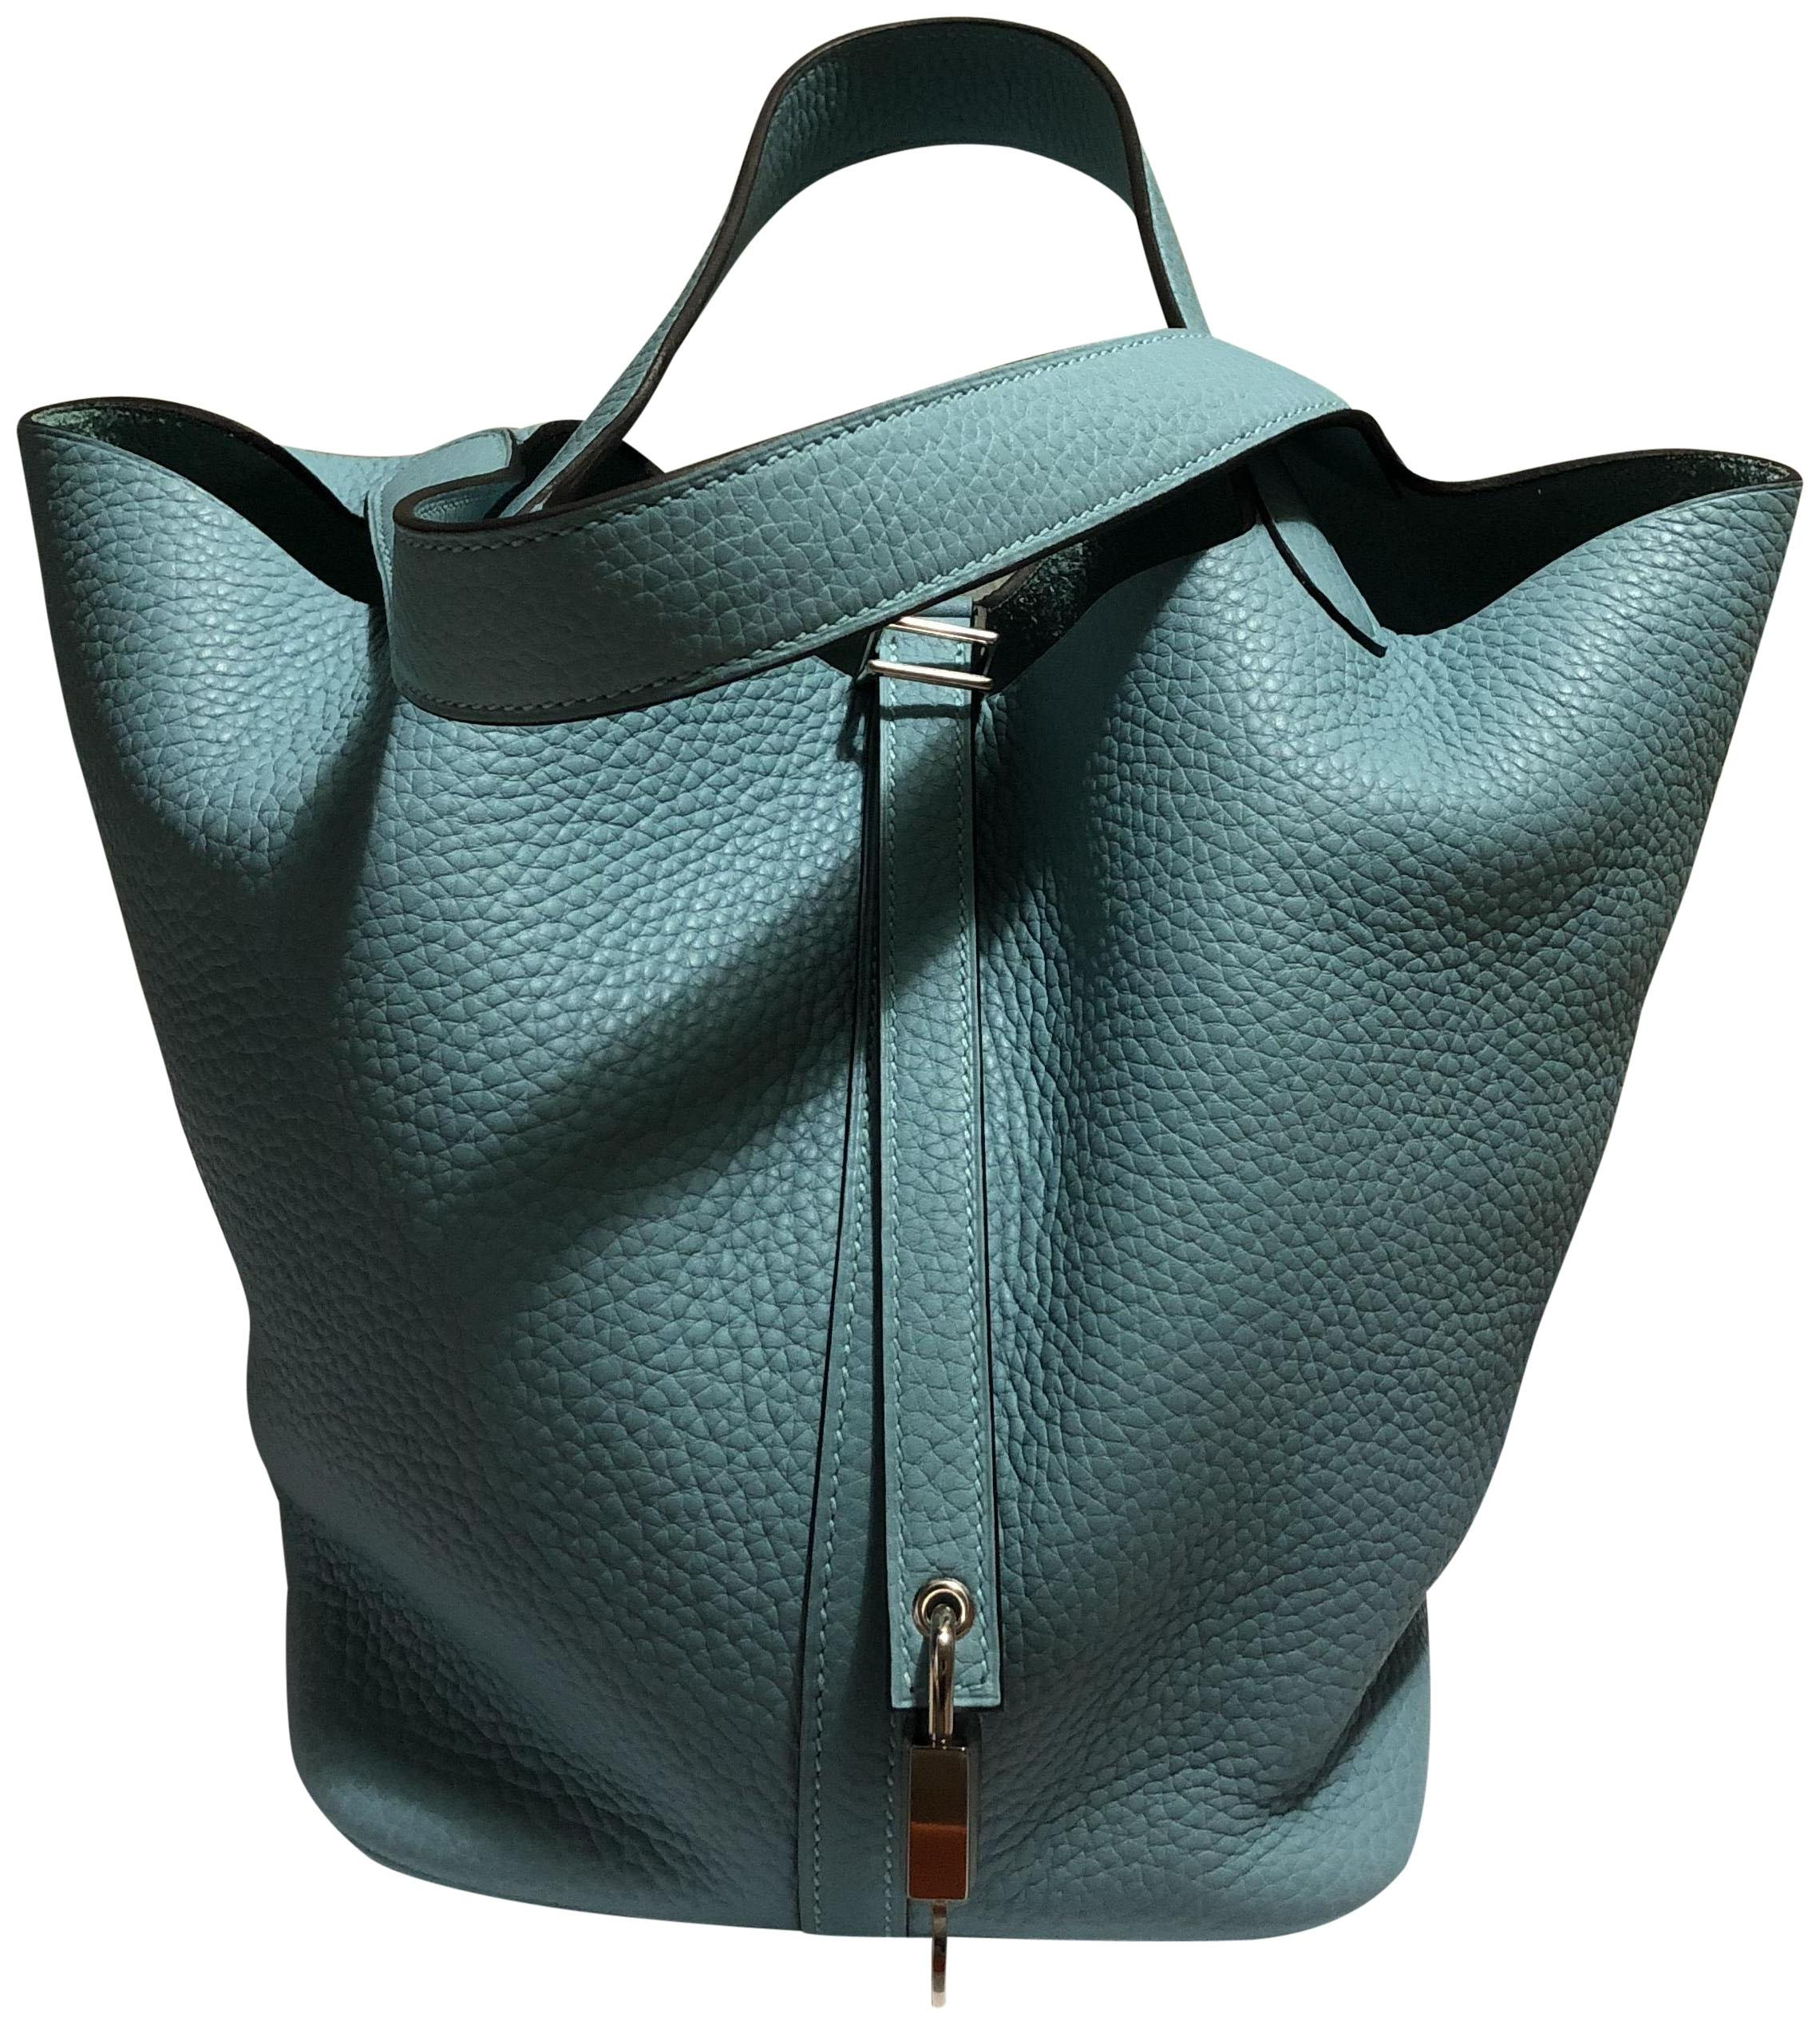 ... czech hermès bags on sale up to 70 off at tradesy 9d794 40a3f 98e8254a6fc6f